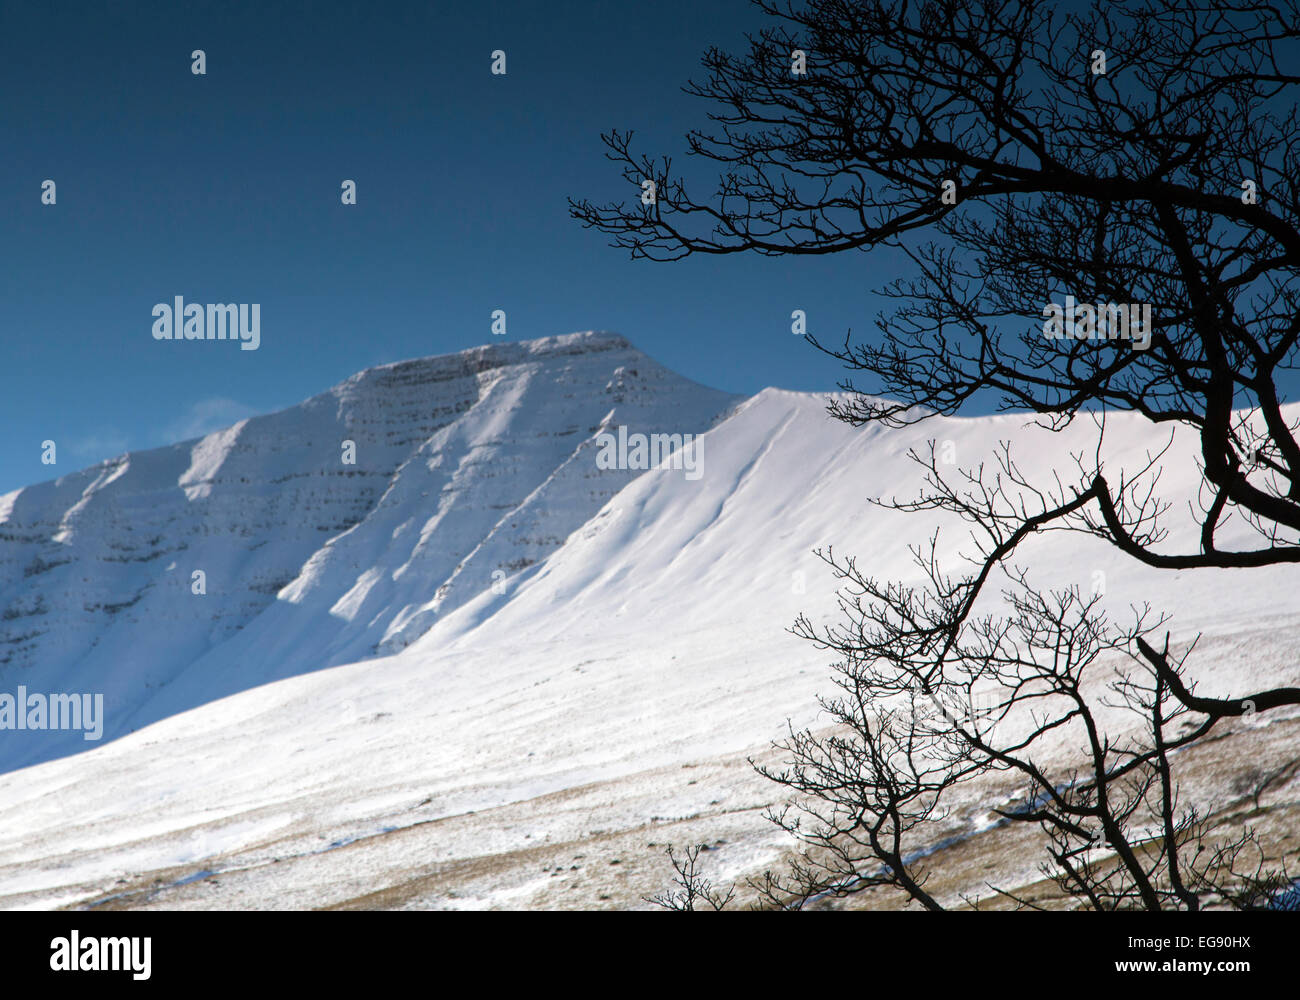 Snow clad Pen Y Fan, in the Brecon Beacons mountains in south Wales. - Stock Image